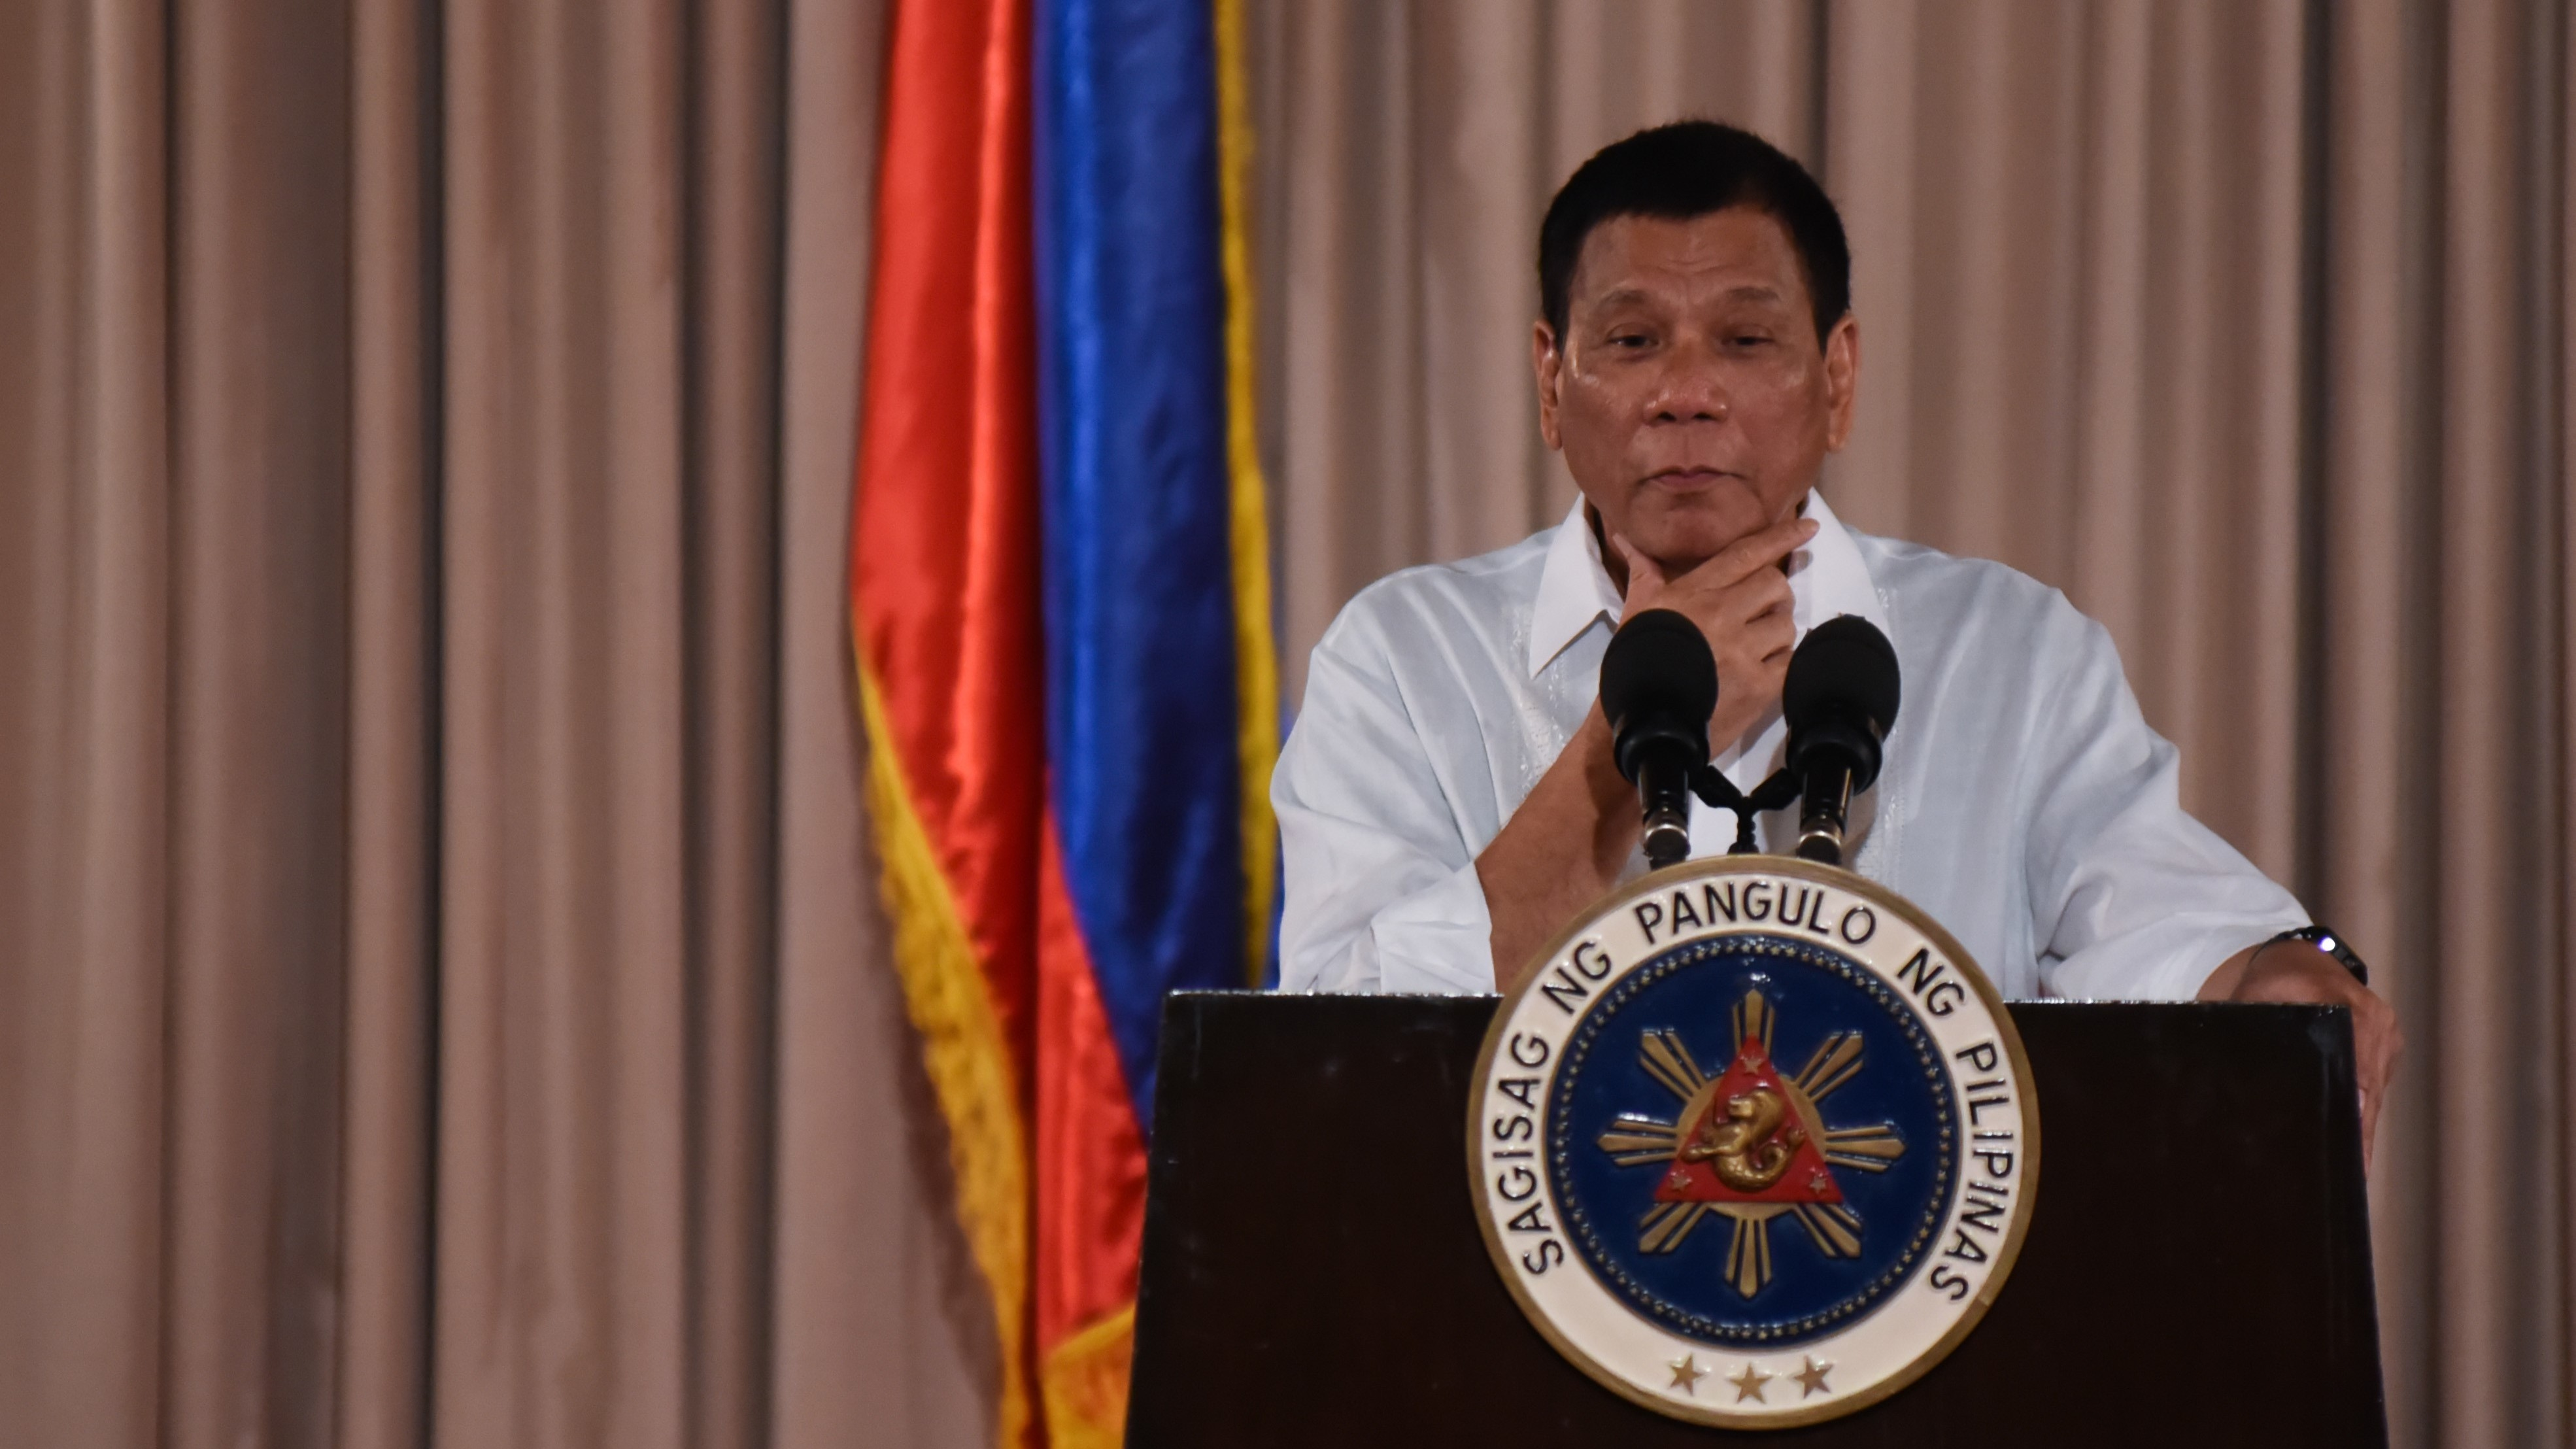 Philippine President Says He'll Open Trade Alliances With China, Russia